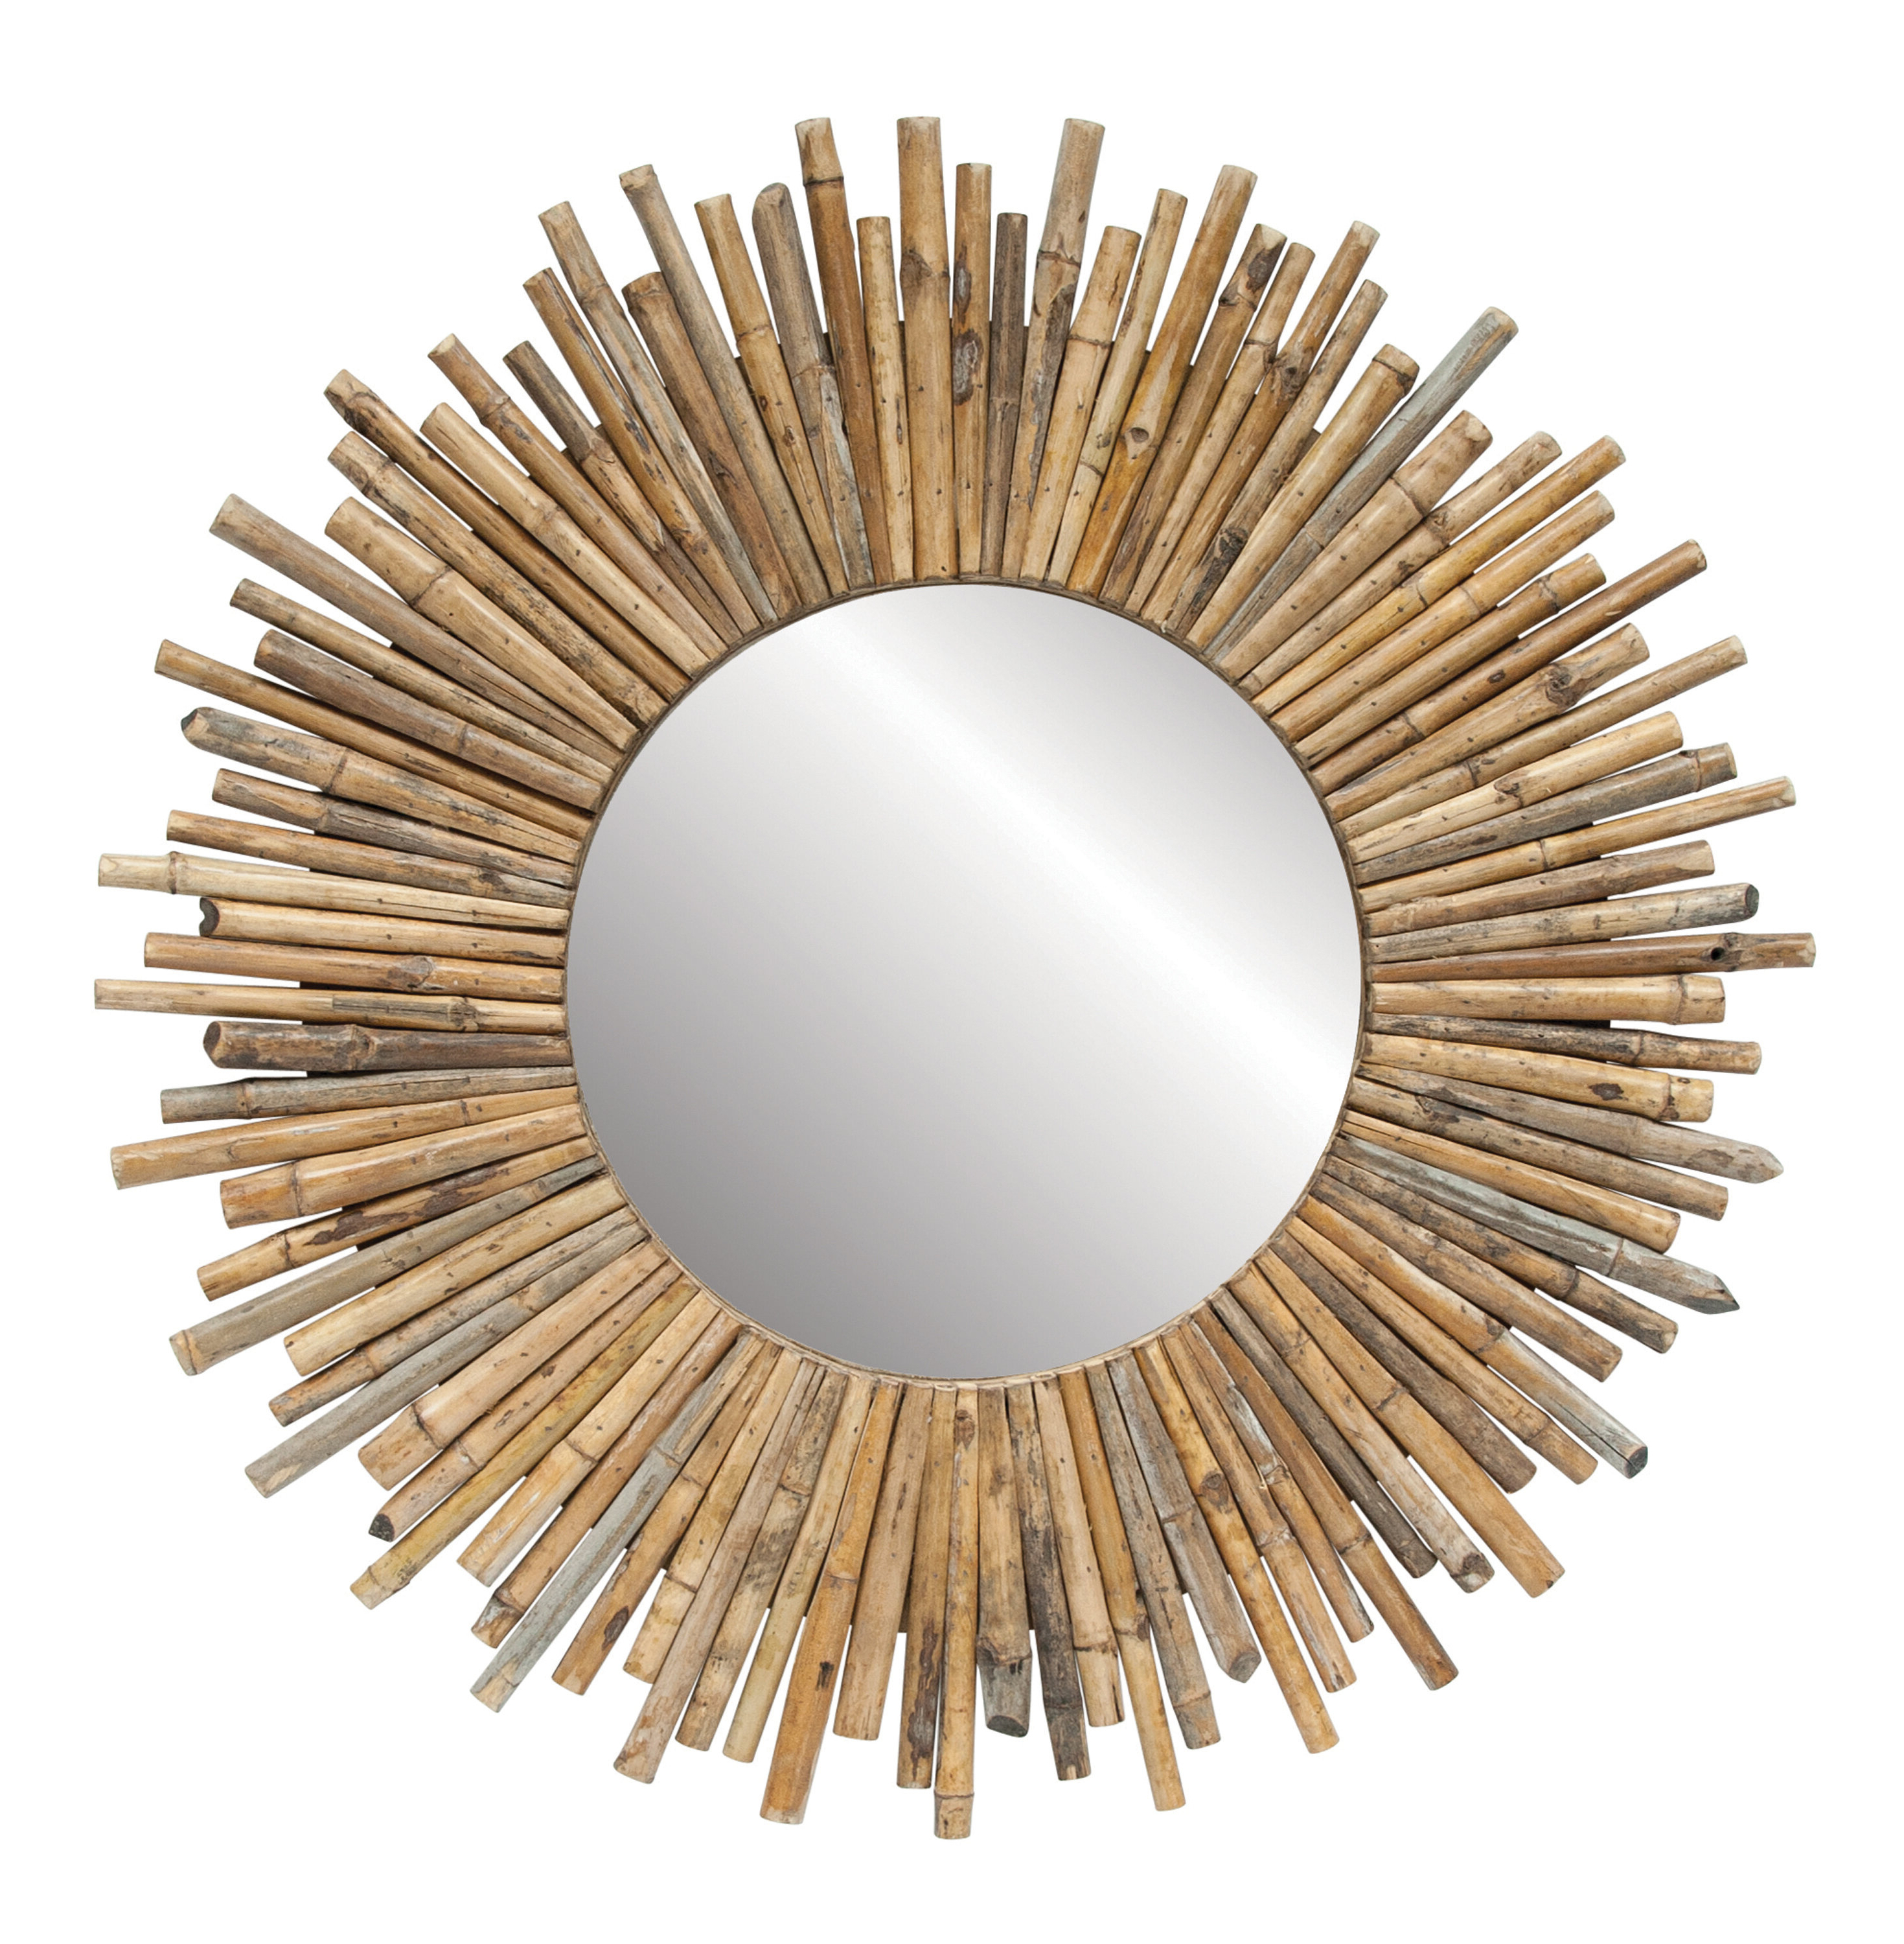 Most Recently Released Madilynn Eclectic Accent Mirror Regarding Josephson Starburst Glam Beveled Accent Wall Mirrors (Gallery 19 of 20)